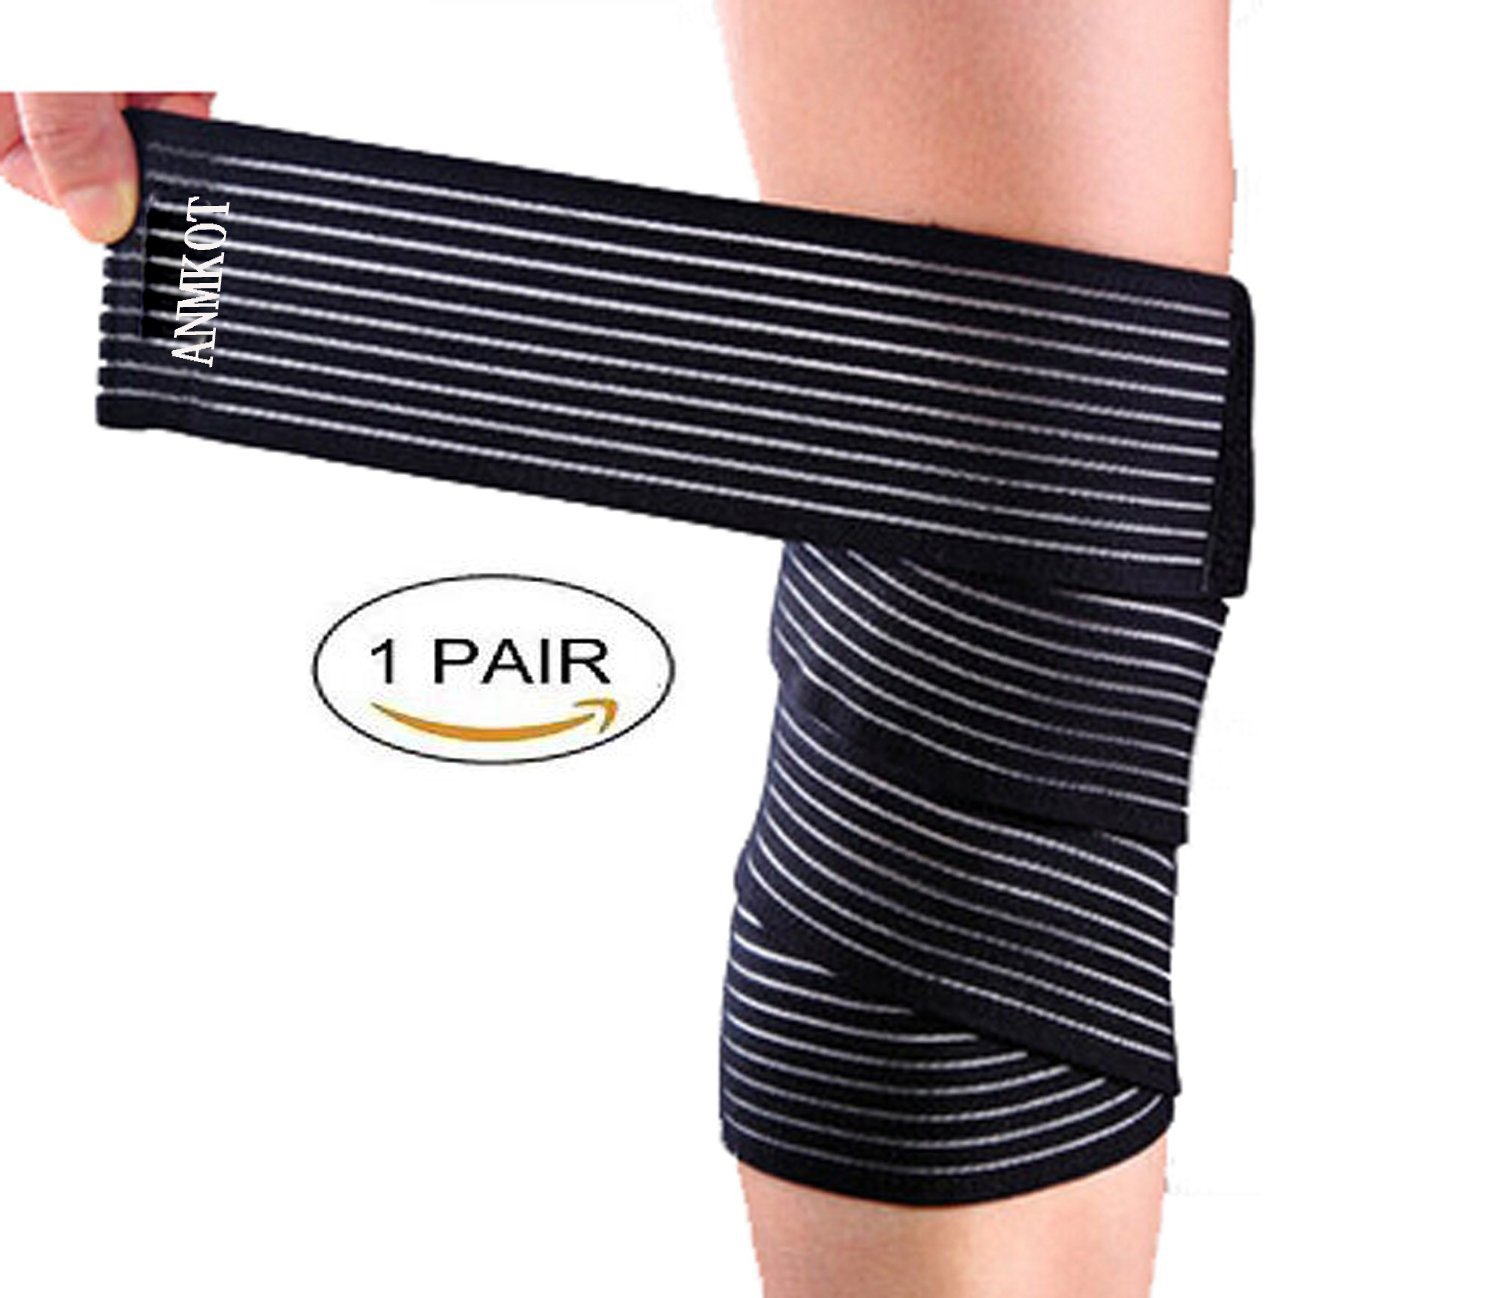 ANMKOT 2PCS Black Elastic Breathable Knee Pain Relief Straps Support Wraps Gym Squat Lifting Knee Brace Velcro Compression Bandage Sleeve (2PCS Knee Bandage)